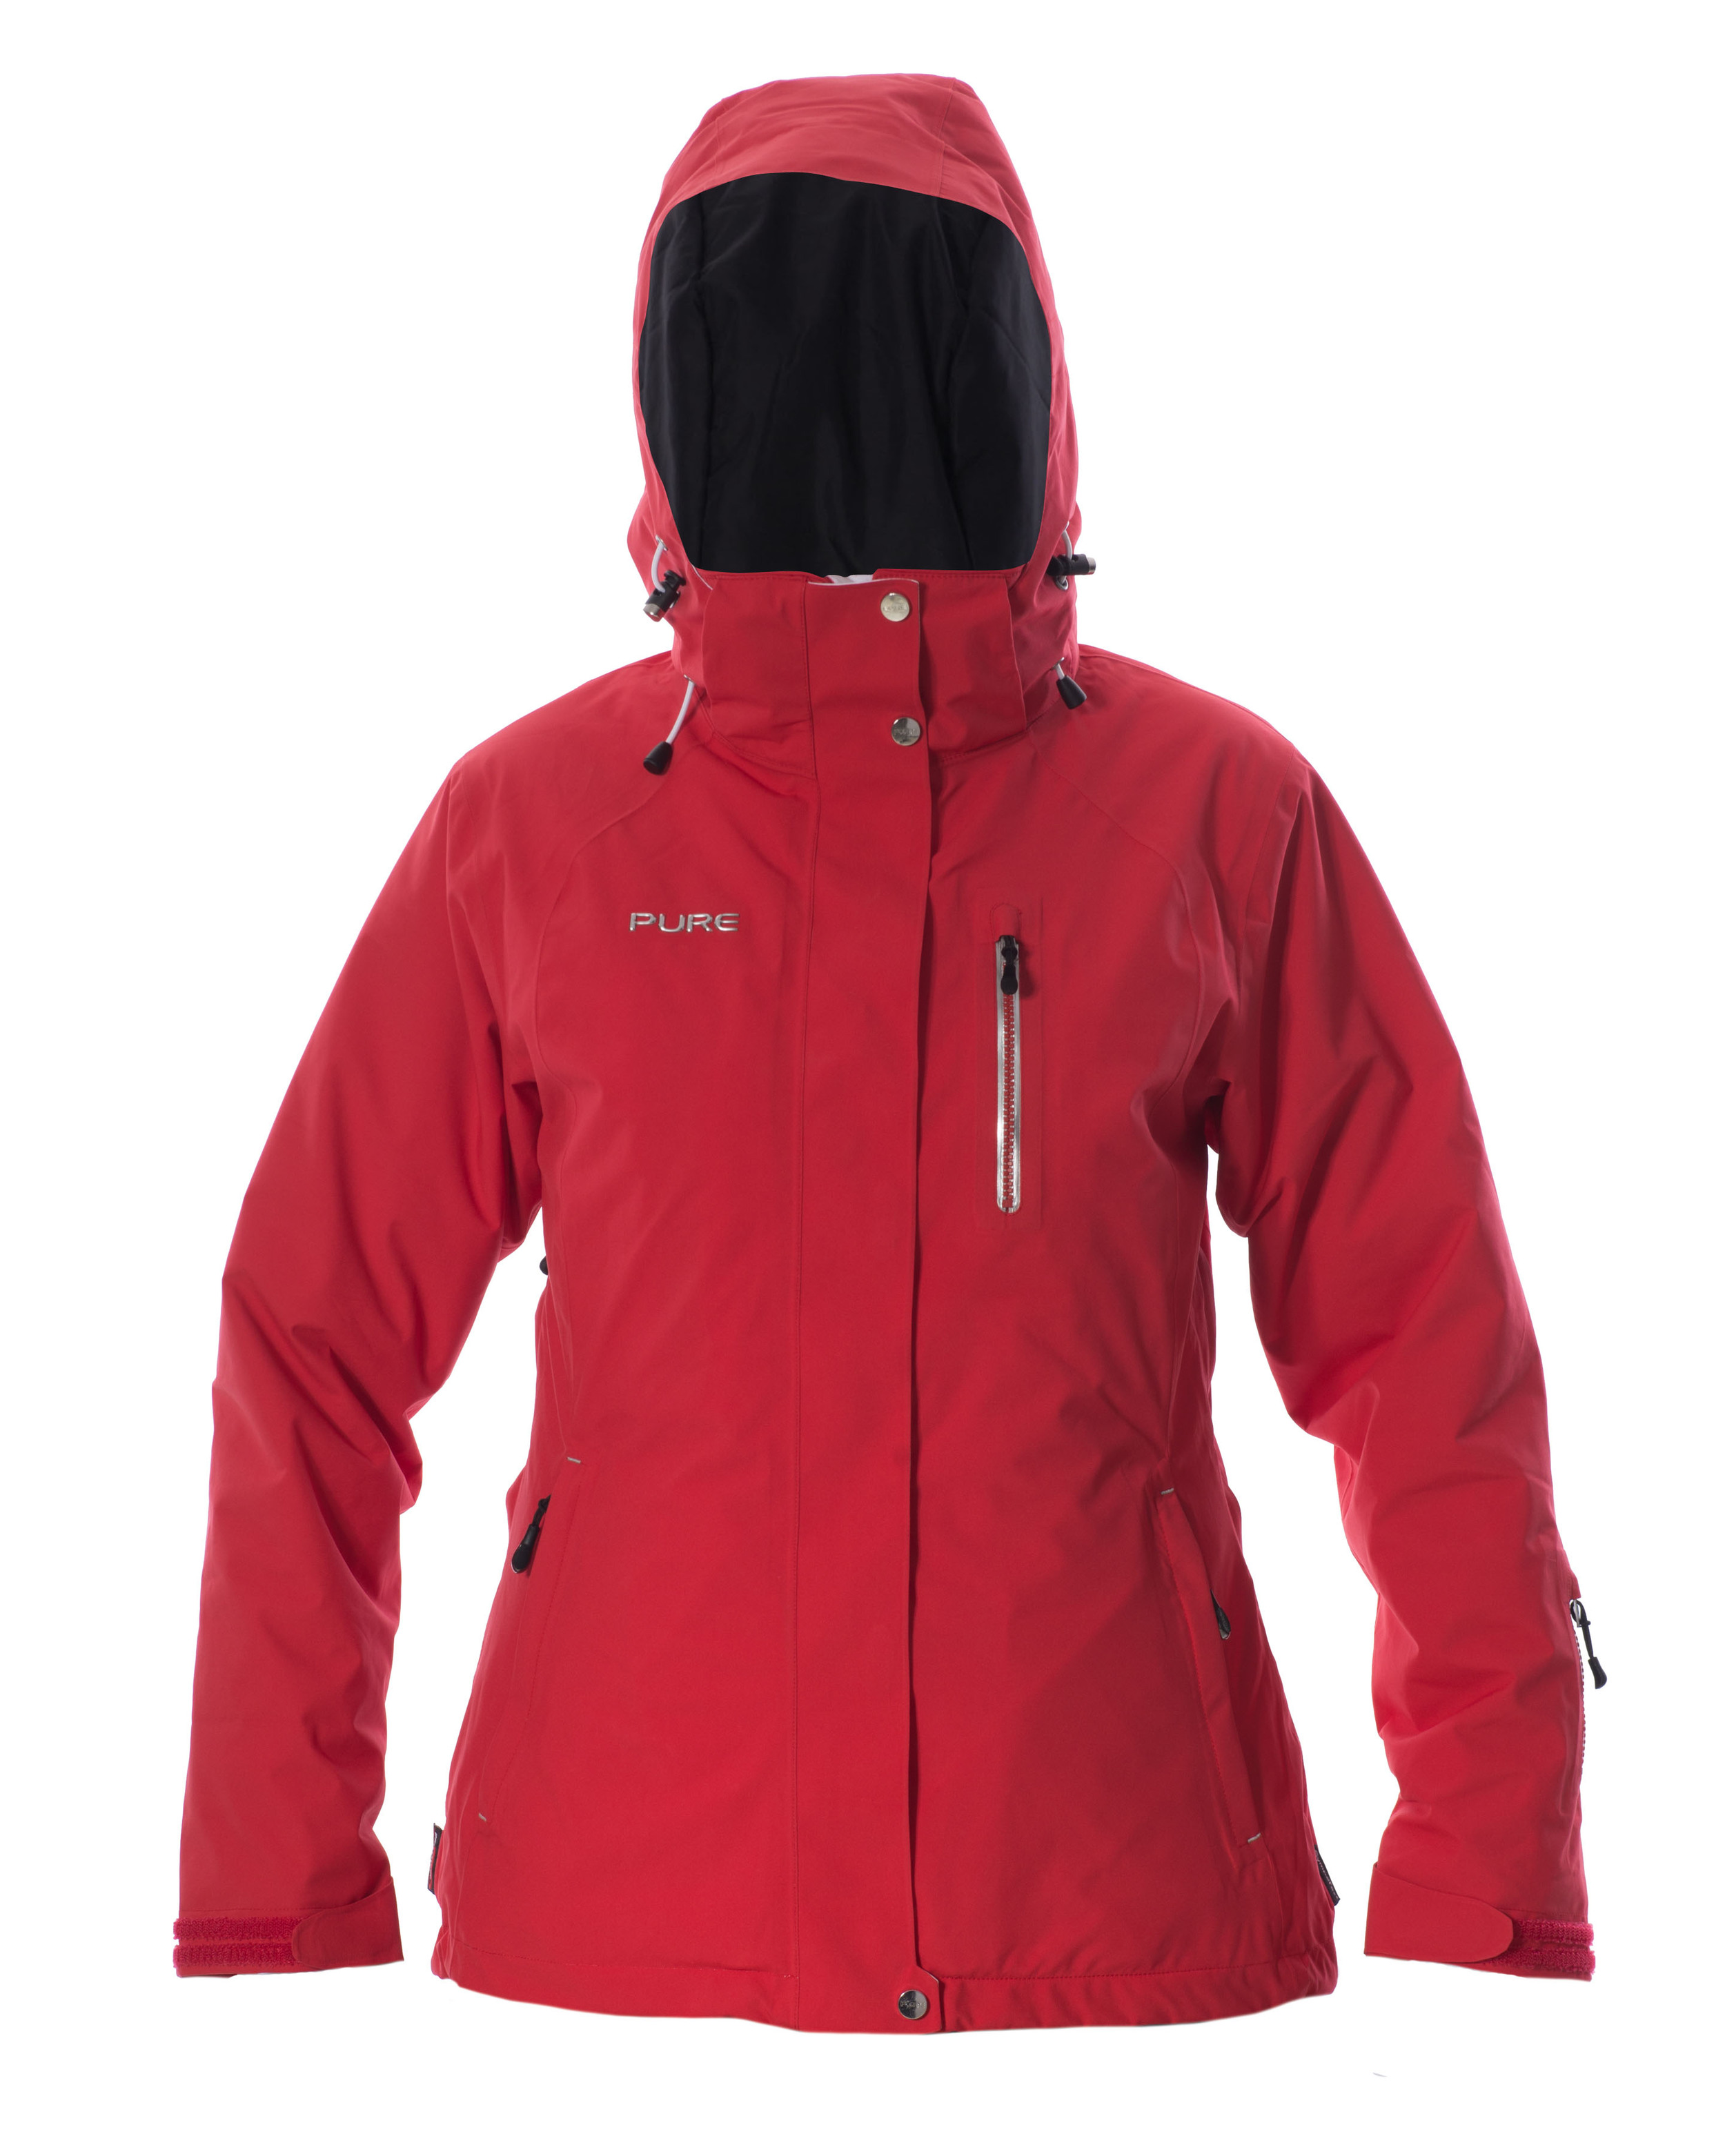 Chamonix Women's Pure Snow - Red